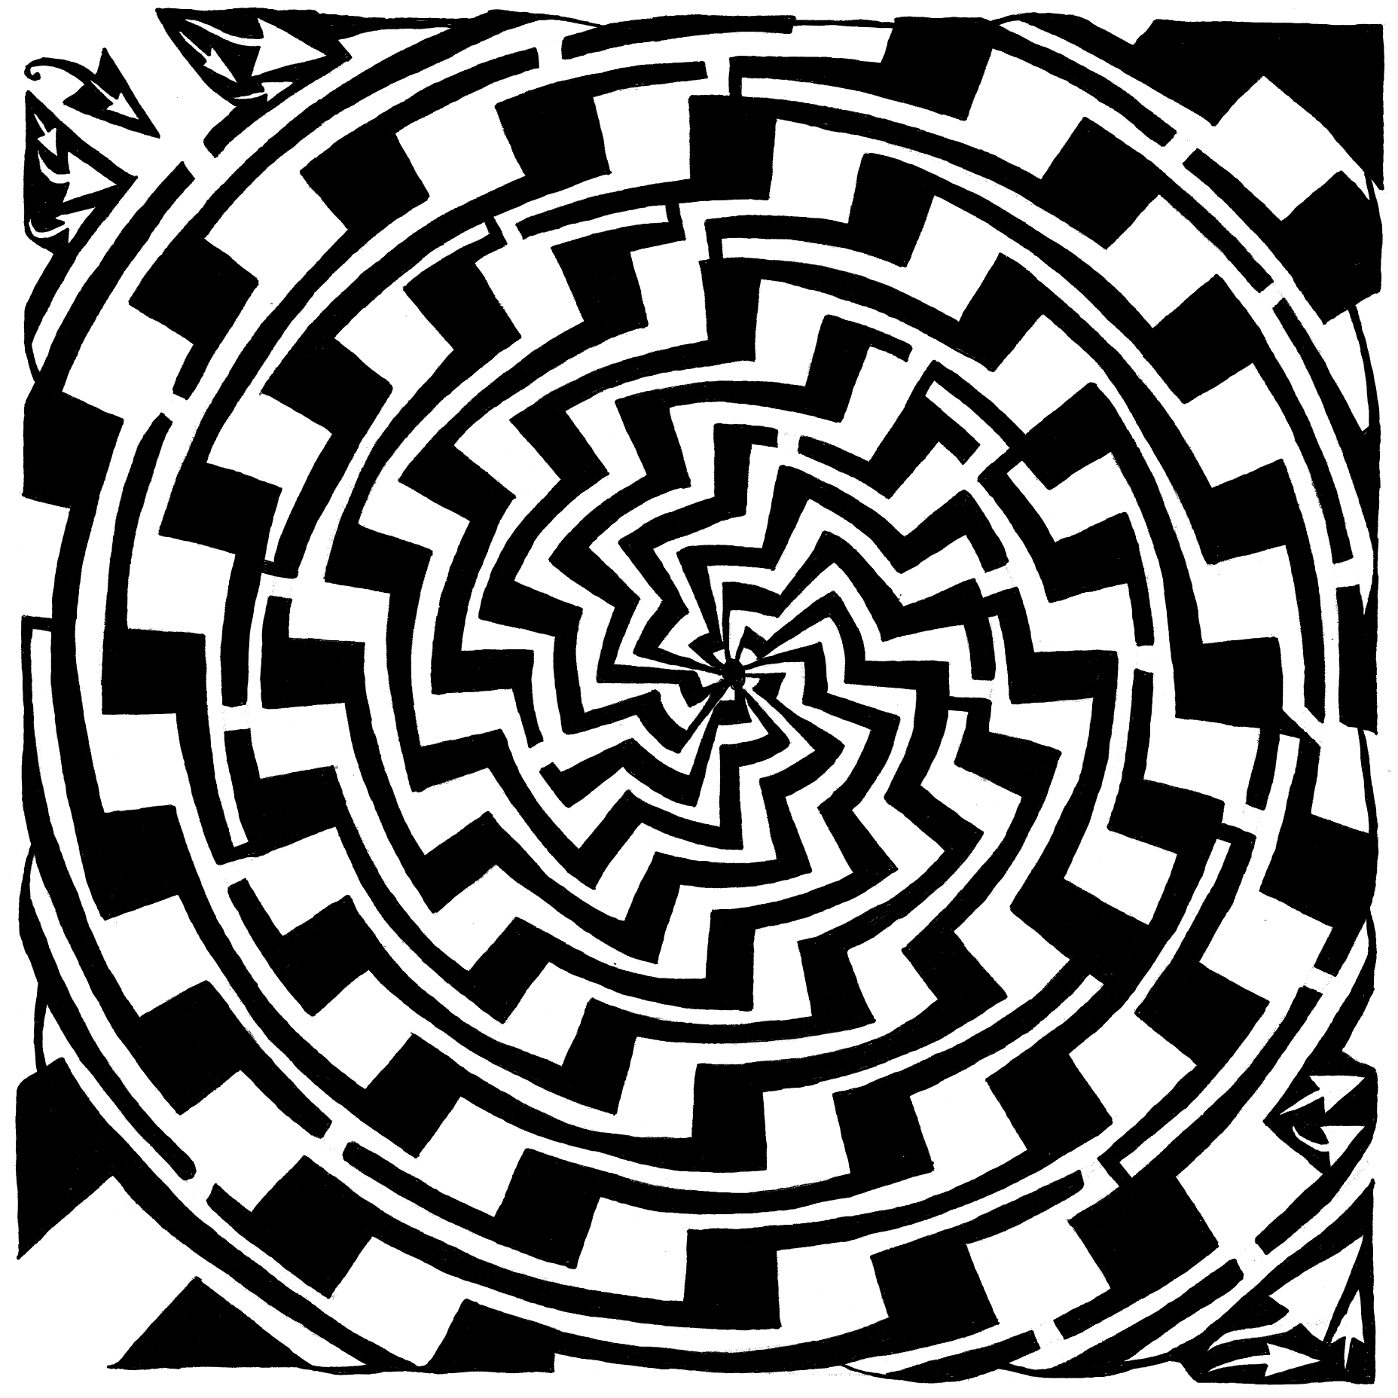 jagged swirl maze optical illusion by Yonatan Frimer